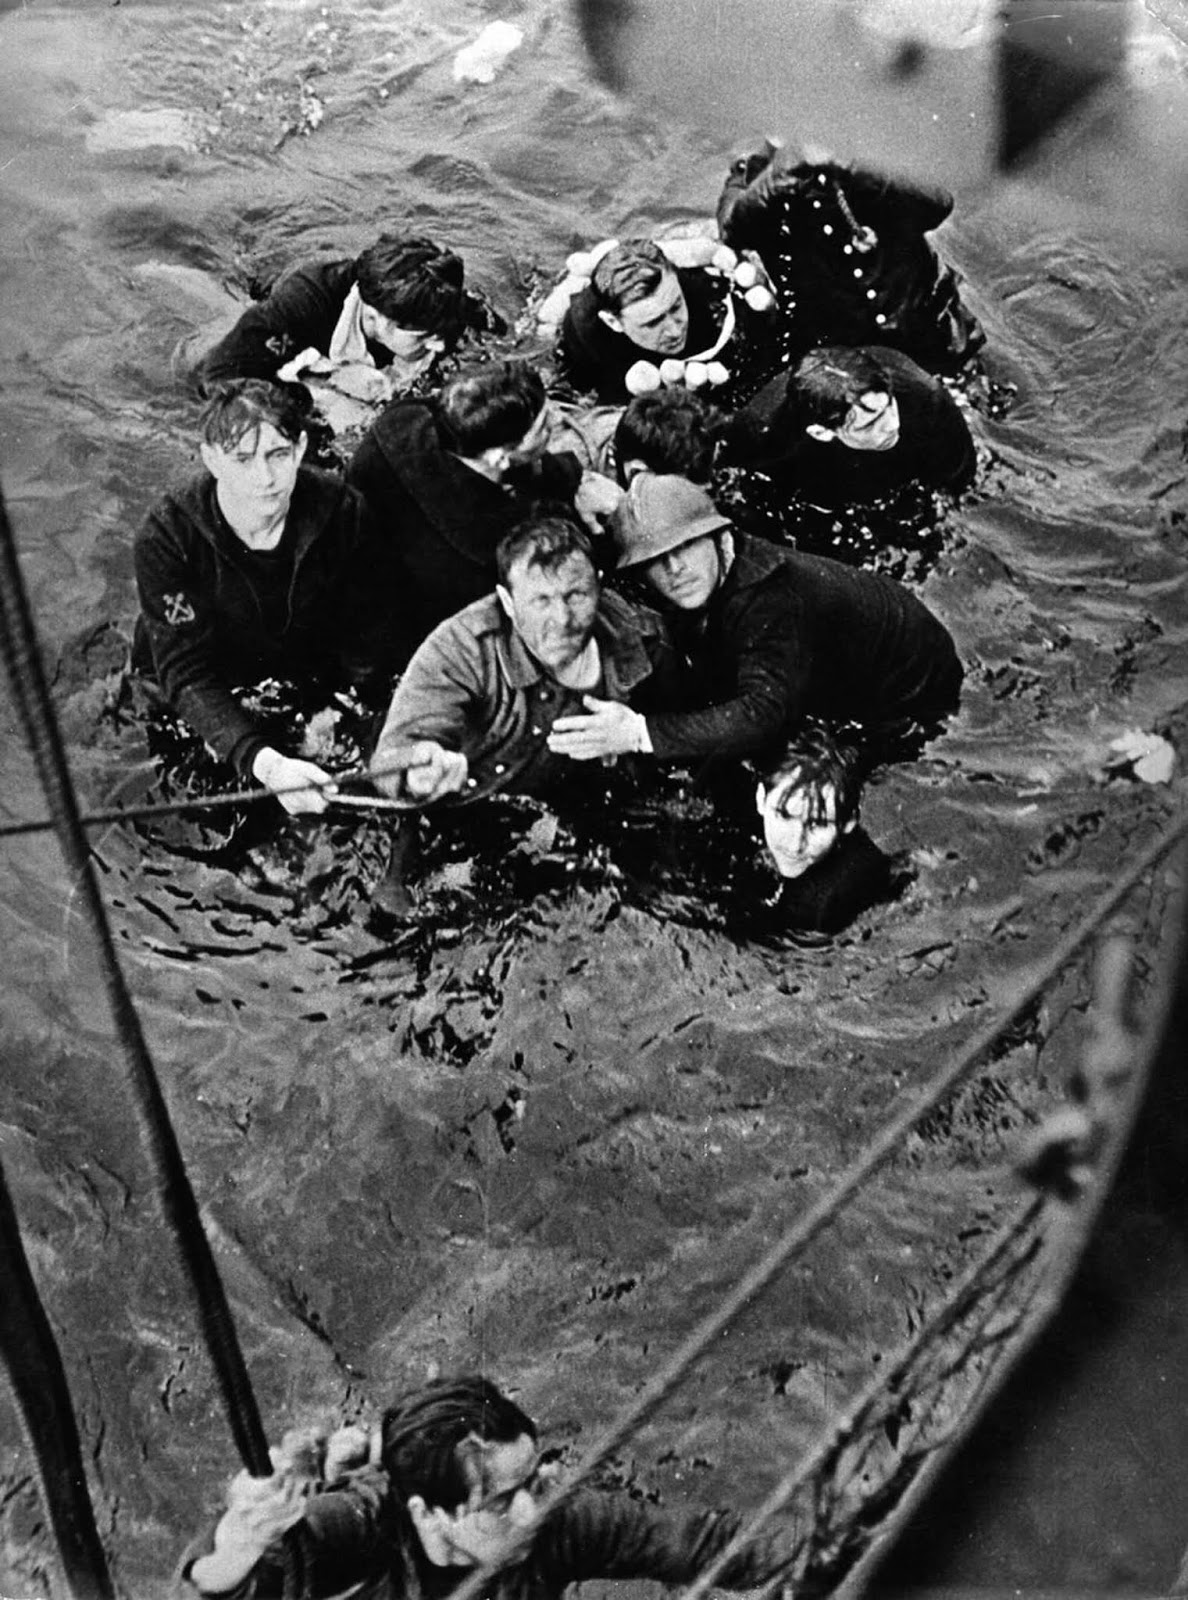 Crew members of the French destroyer Bourrasque, sunk by a mine at Dunkirk, are hauled aboard a British vessel from their sinking life raft.